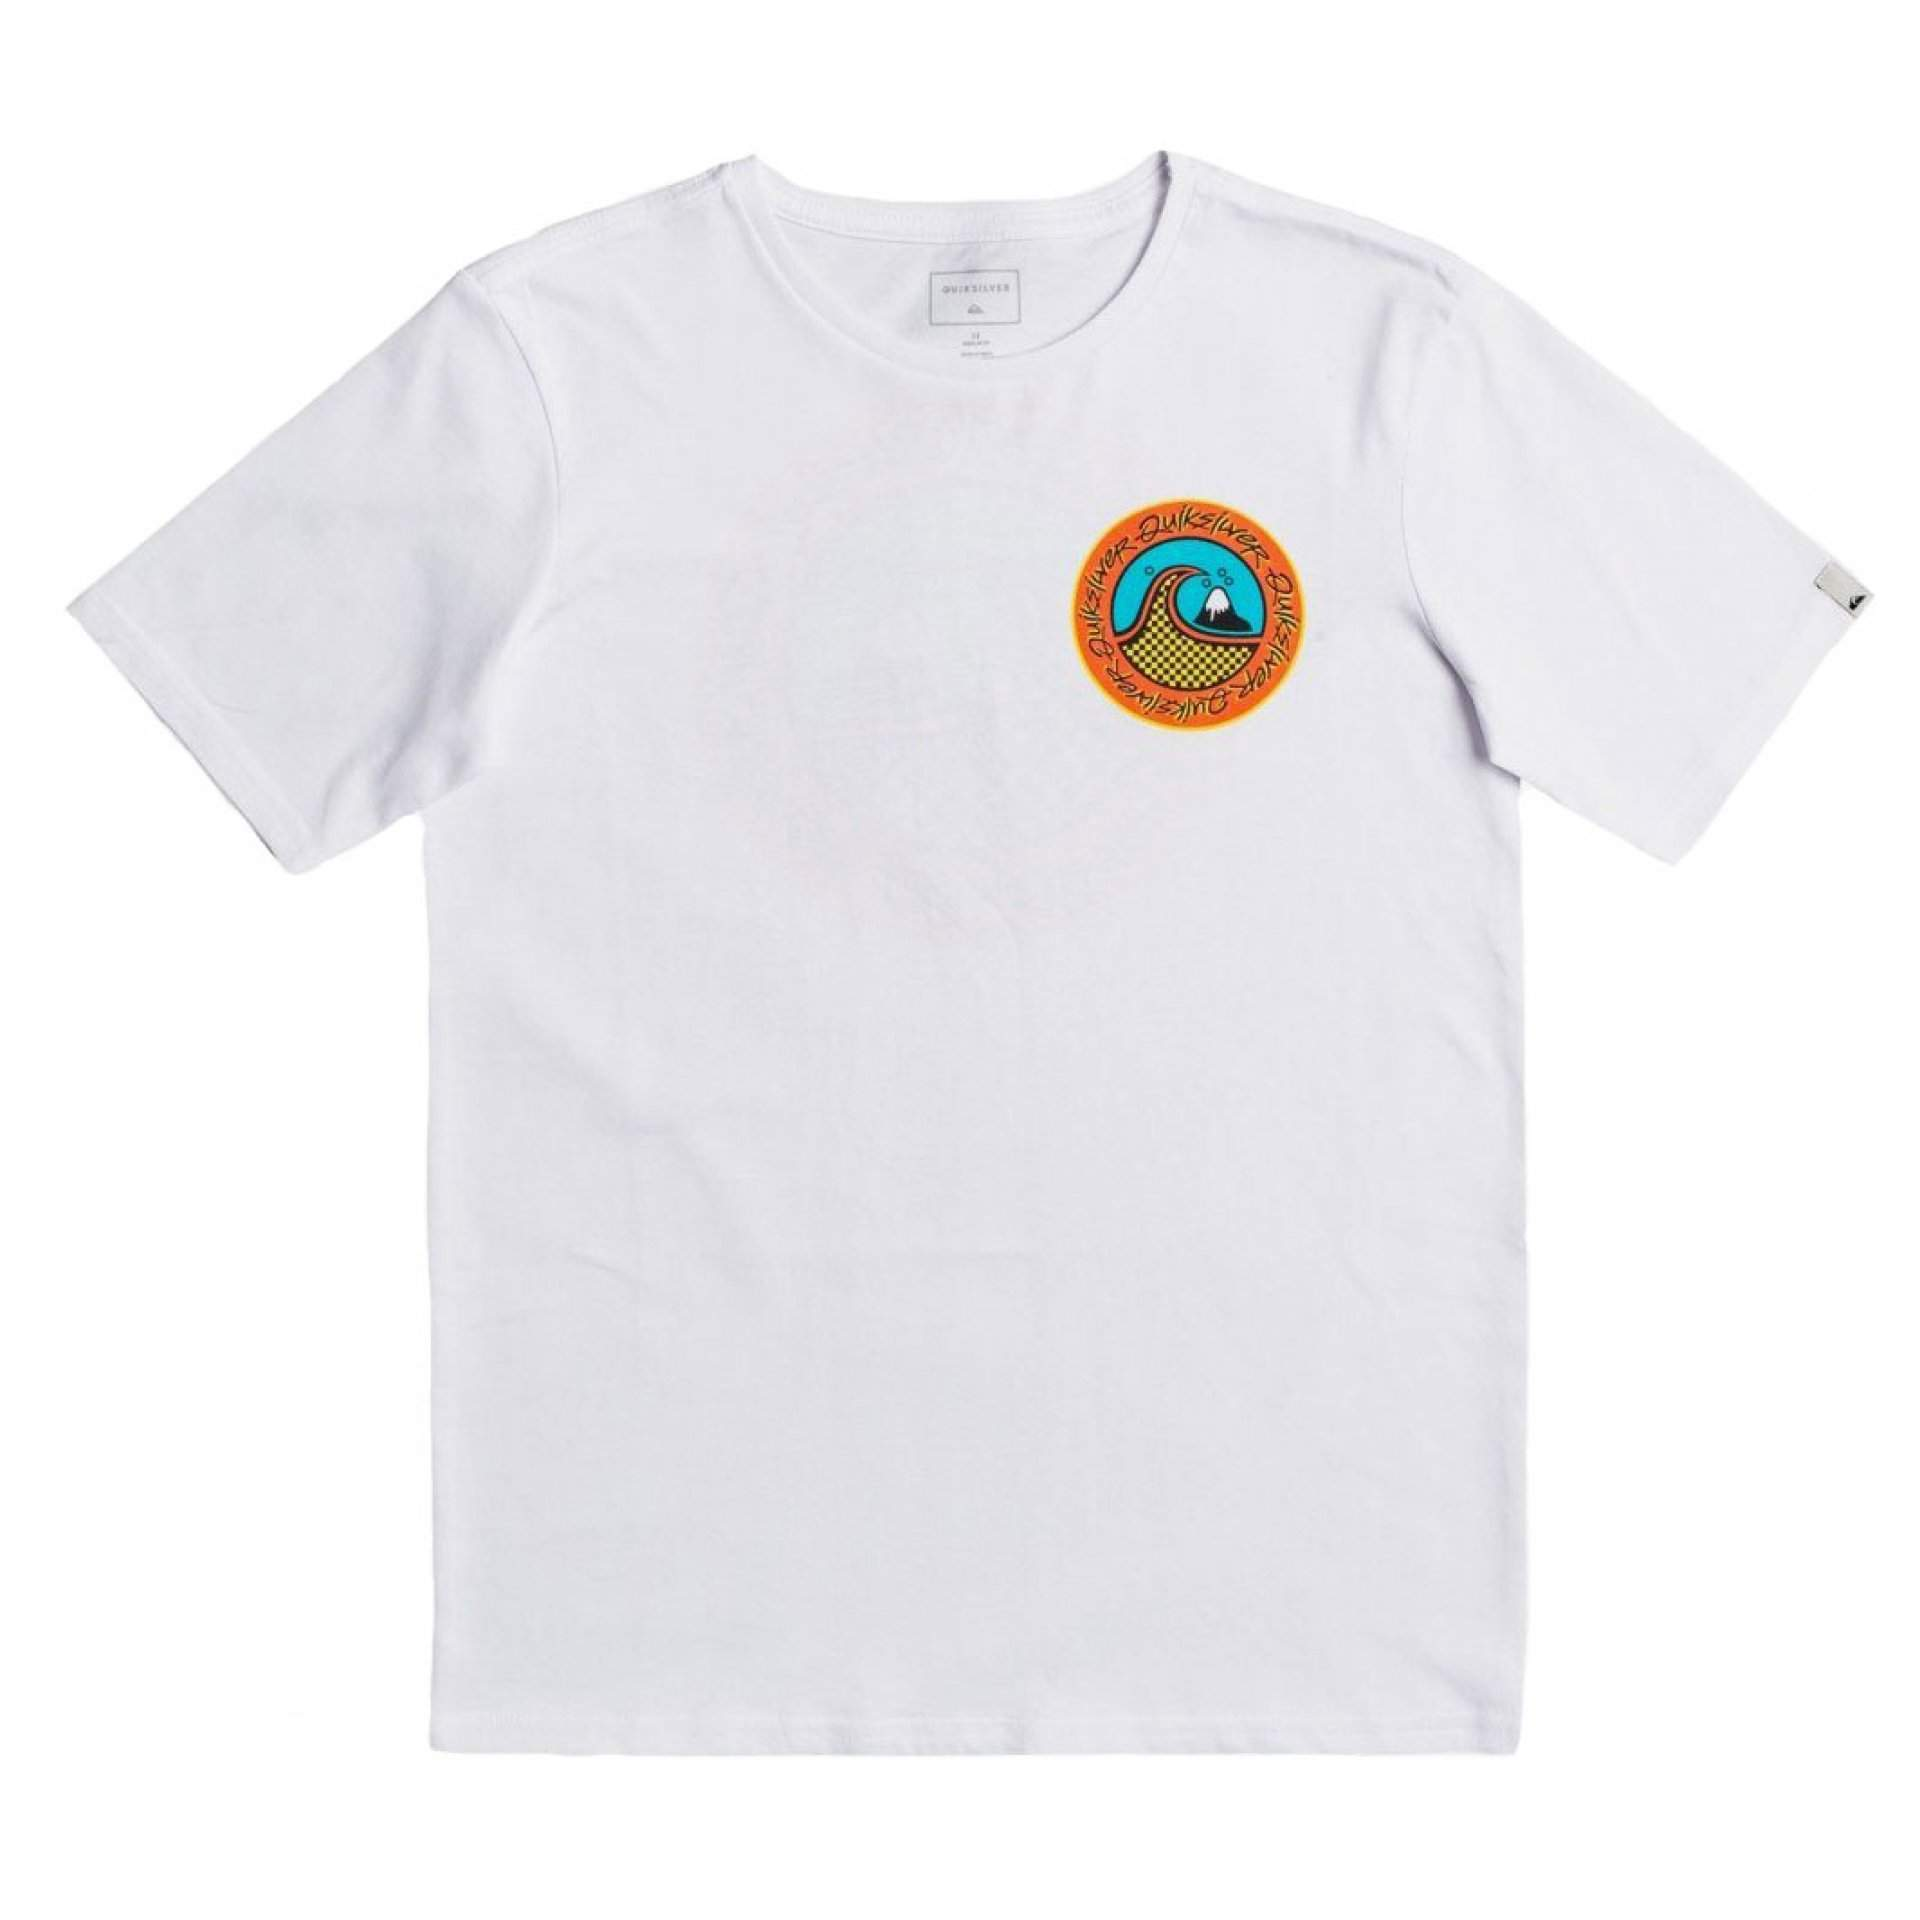 T-SHIRT QUIKSILVER ELECTRIC ROOTS YOUTH EQBZT04330 WBB0